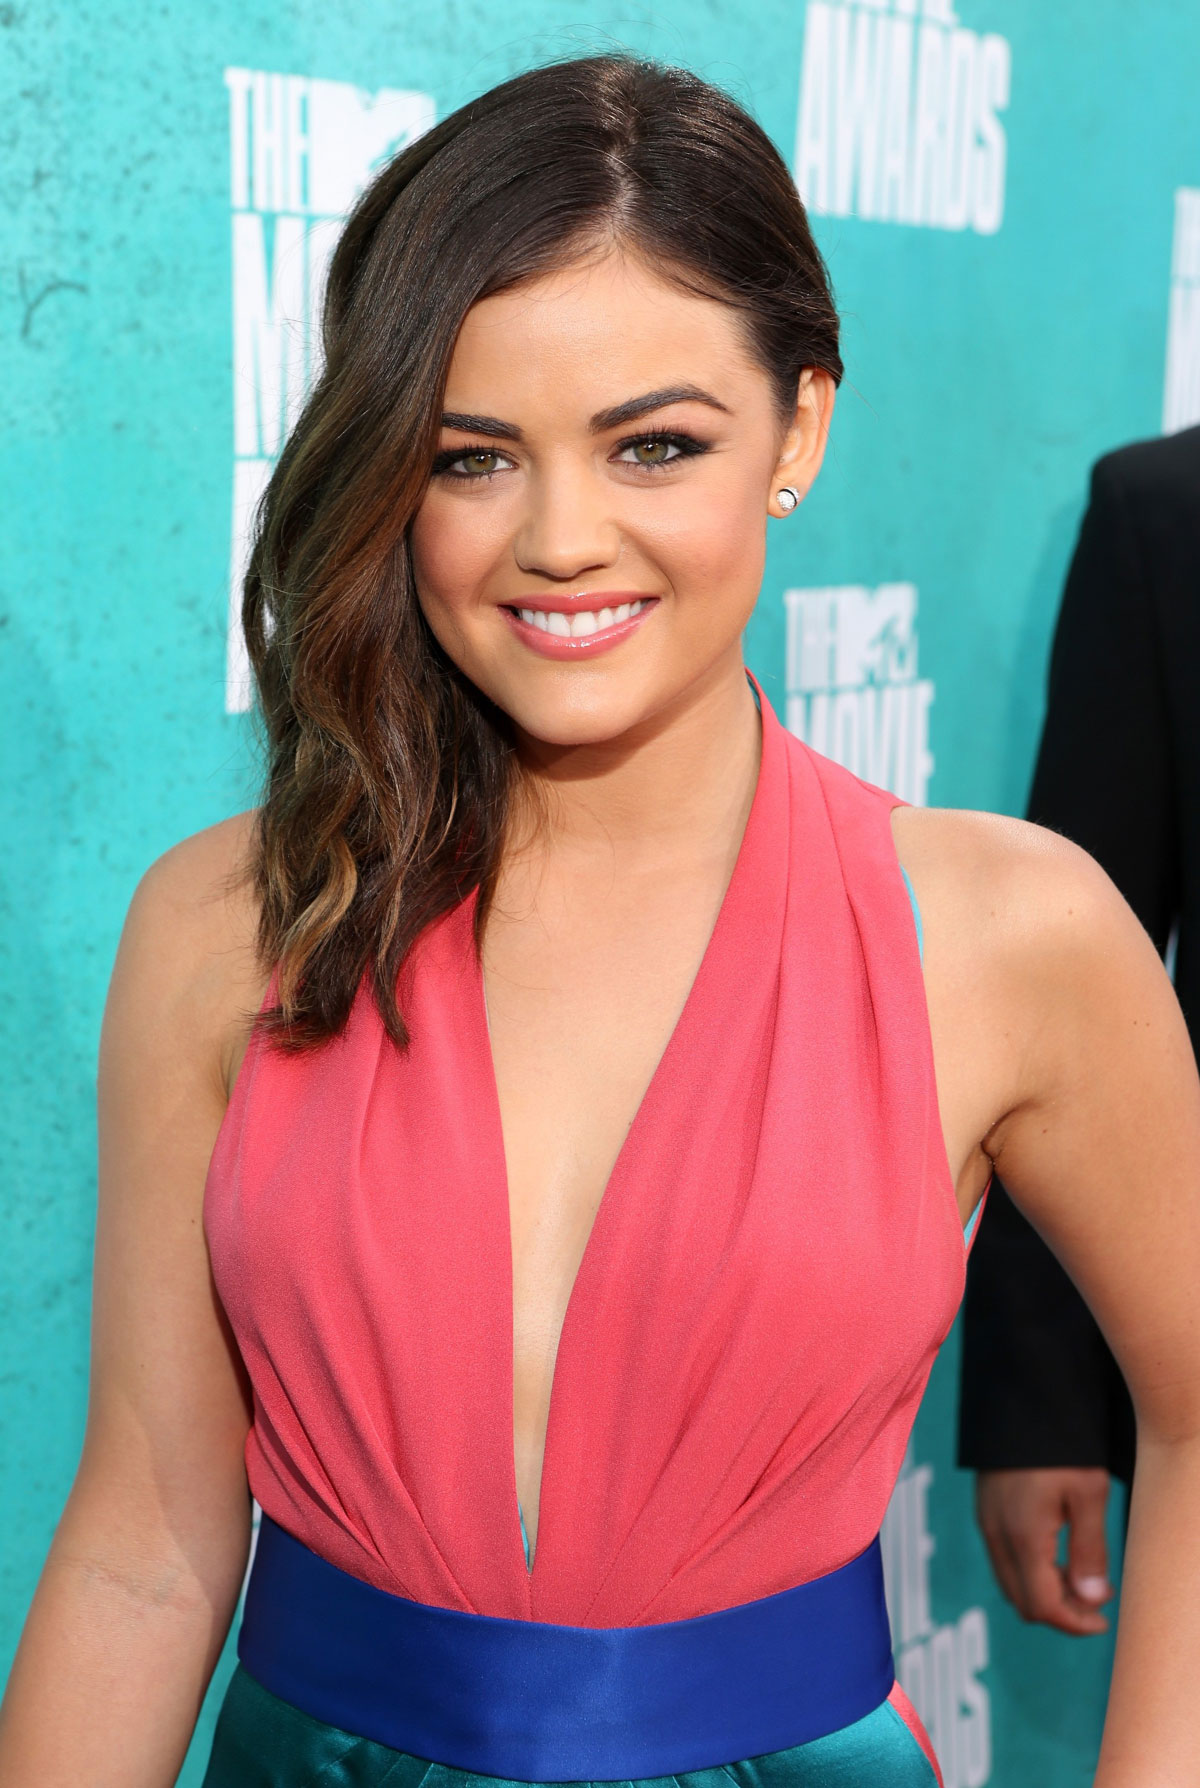 Lucy hale at mtv movie awards 2012 at universal studios in los angeles